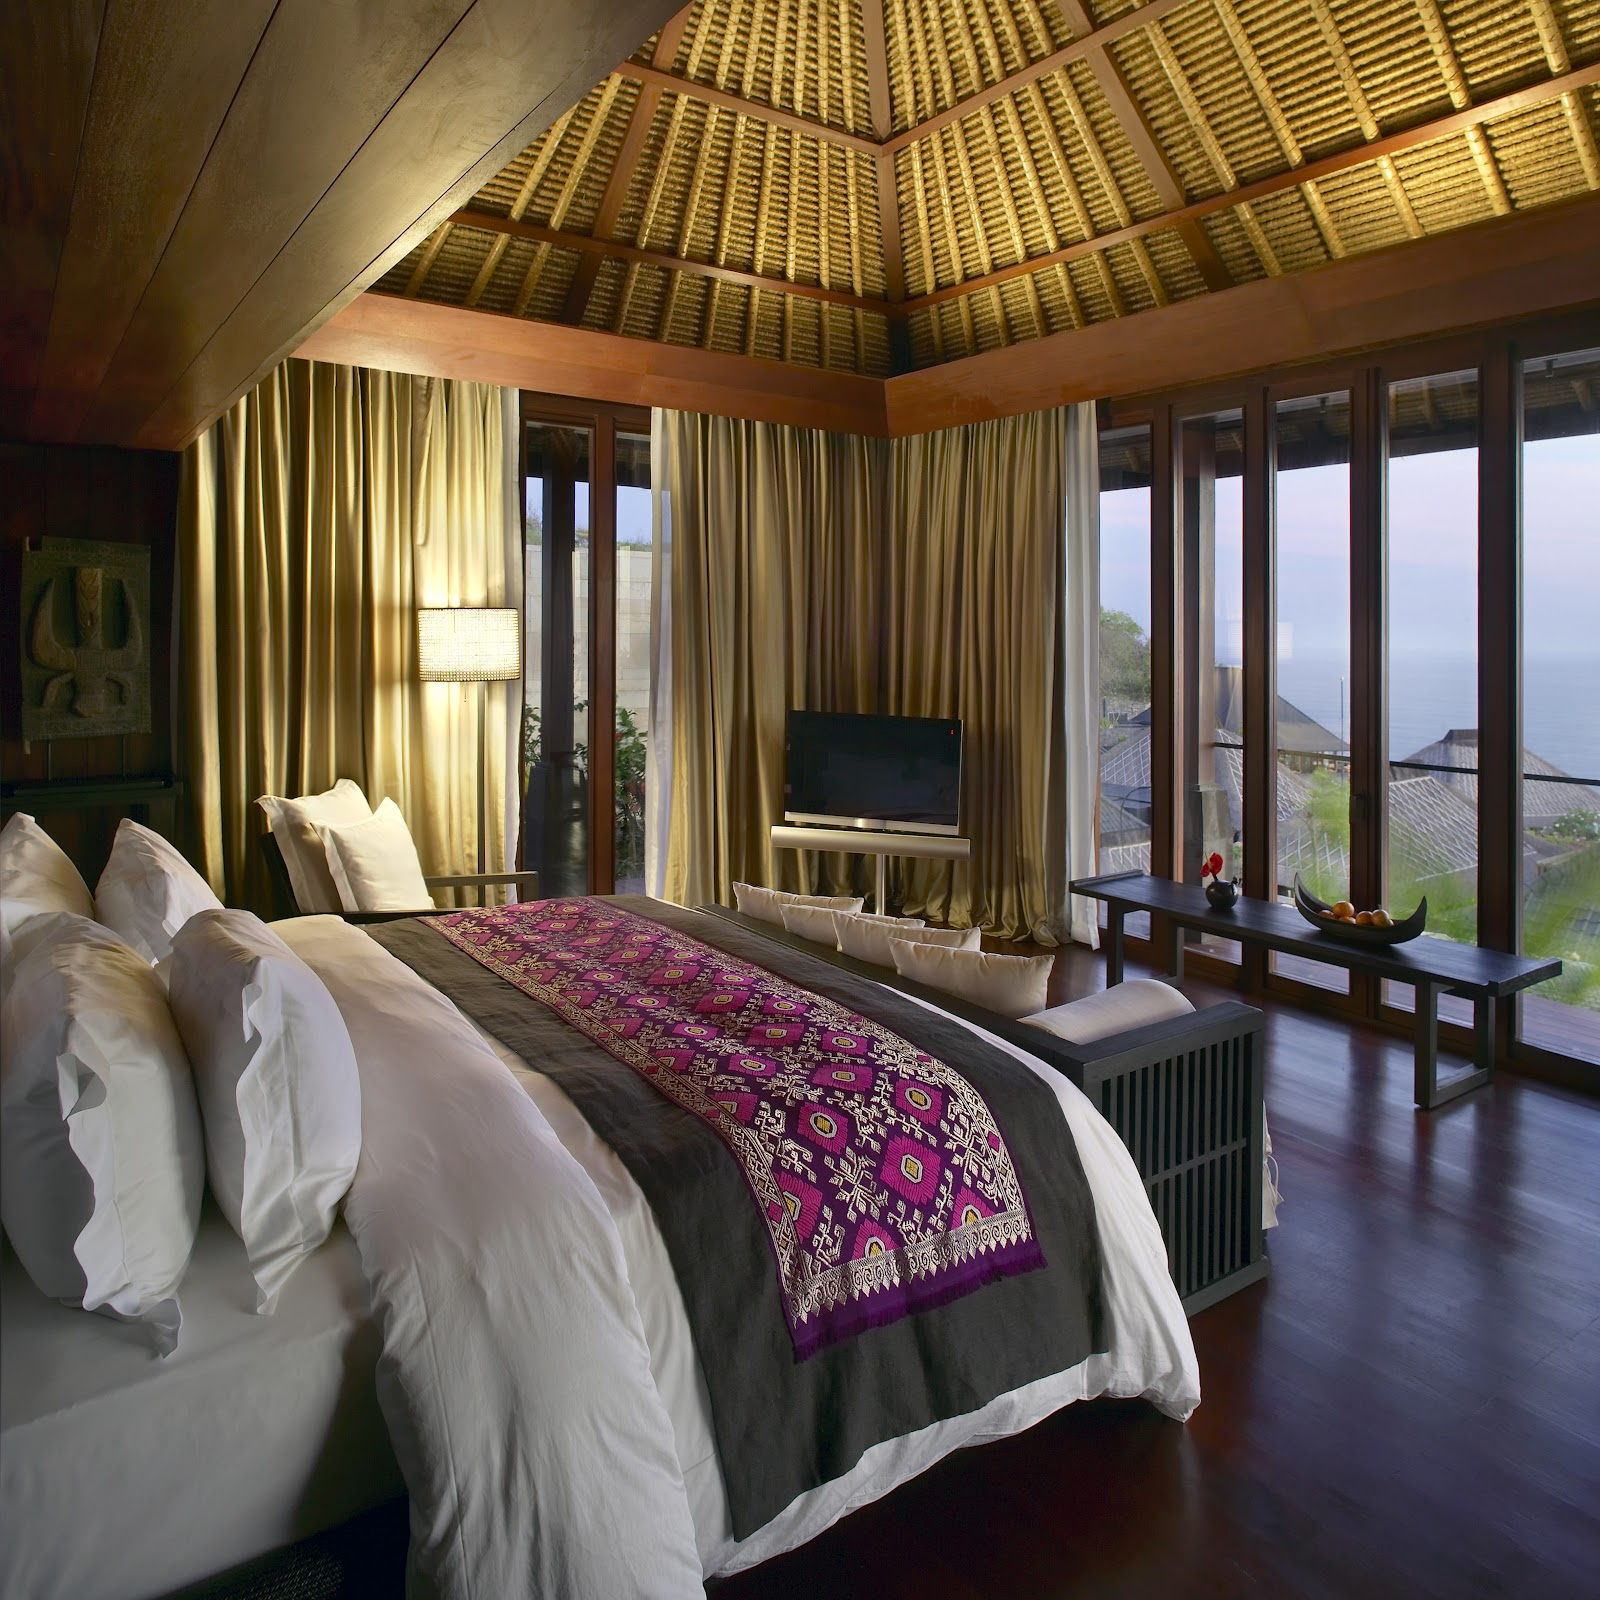 balinese bedroom decor with indonesian silk bed cover